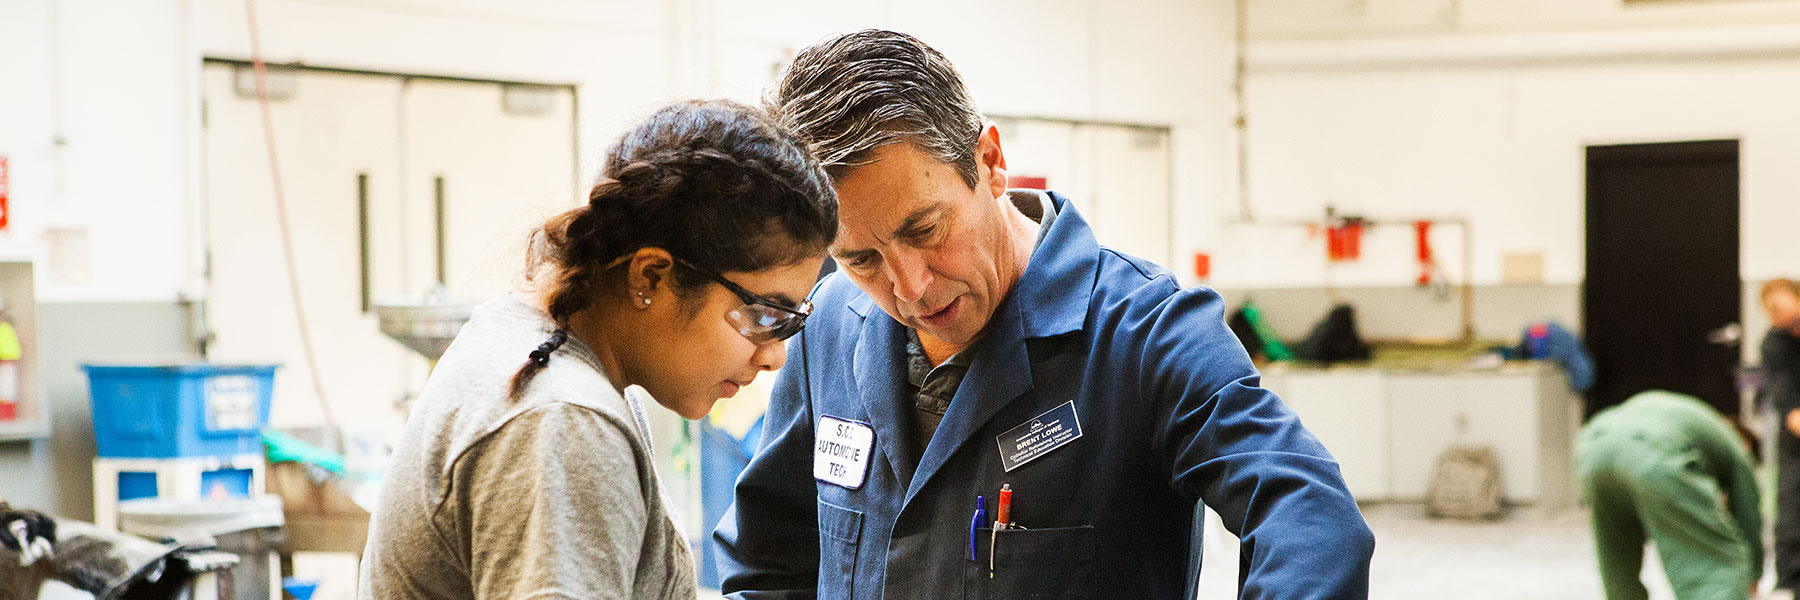 An automotive tech teacher helps a female student in the workshop